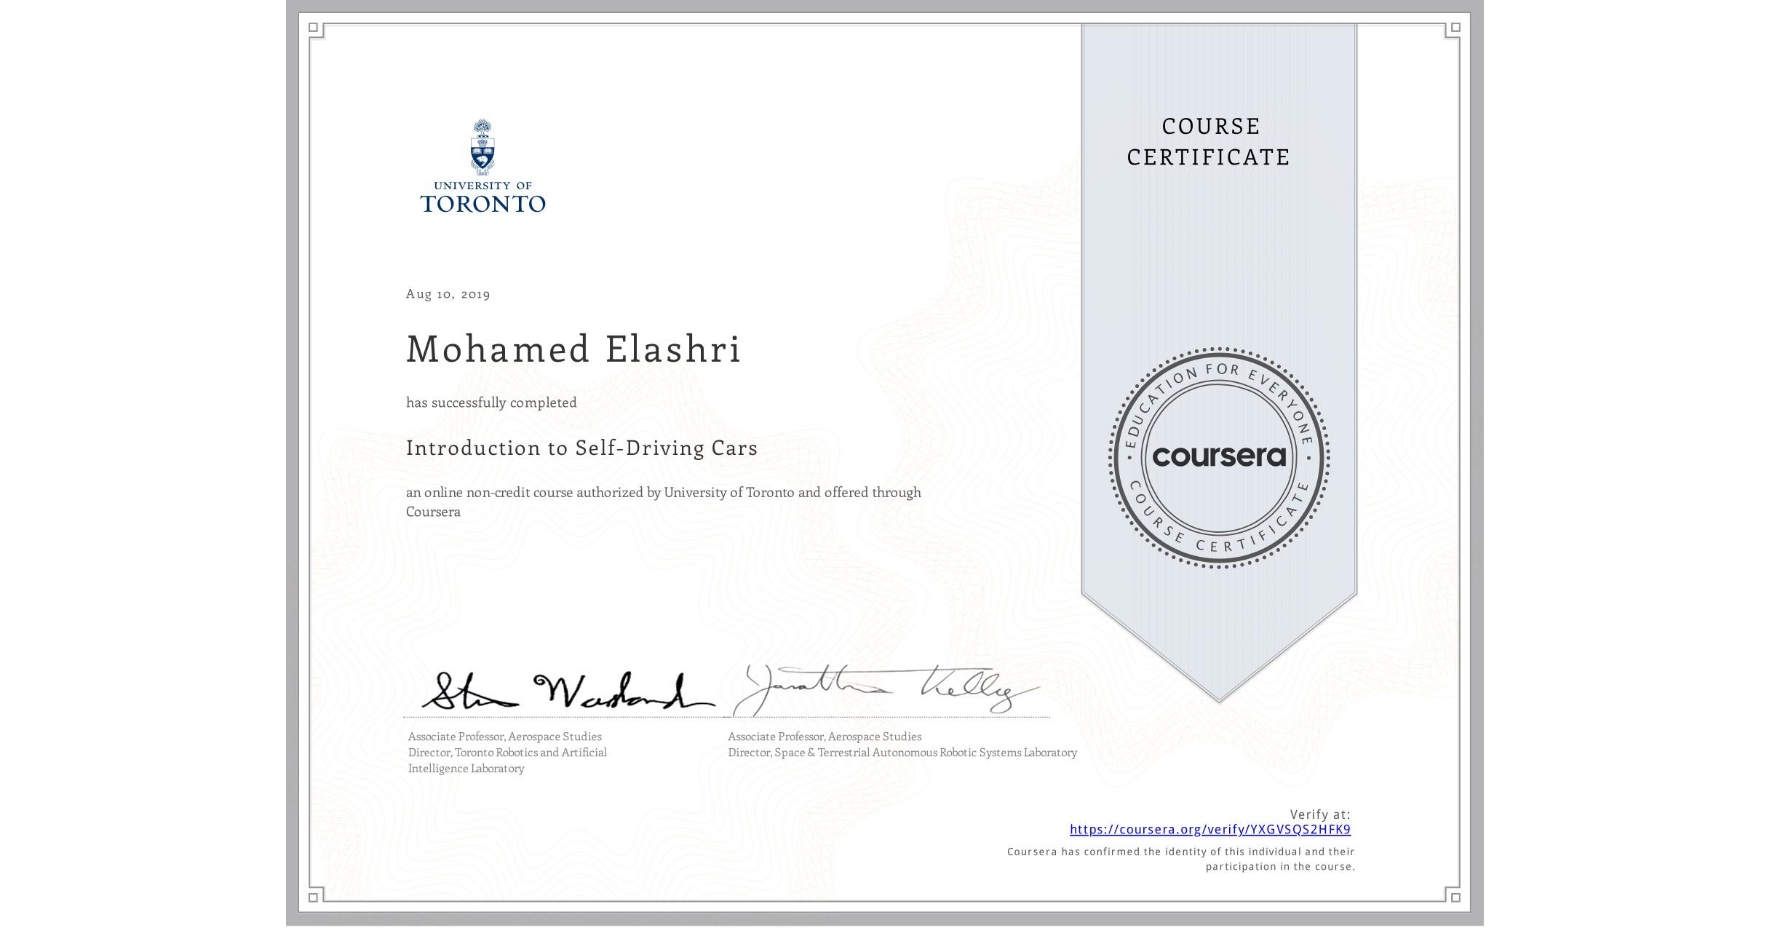 View certificate for Mohamed Elashri, Introduction to Self-Driving Cars, an online non-credit course authorized by University of Toronto and offered through Coursera